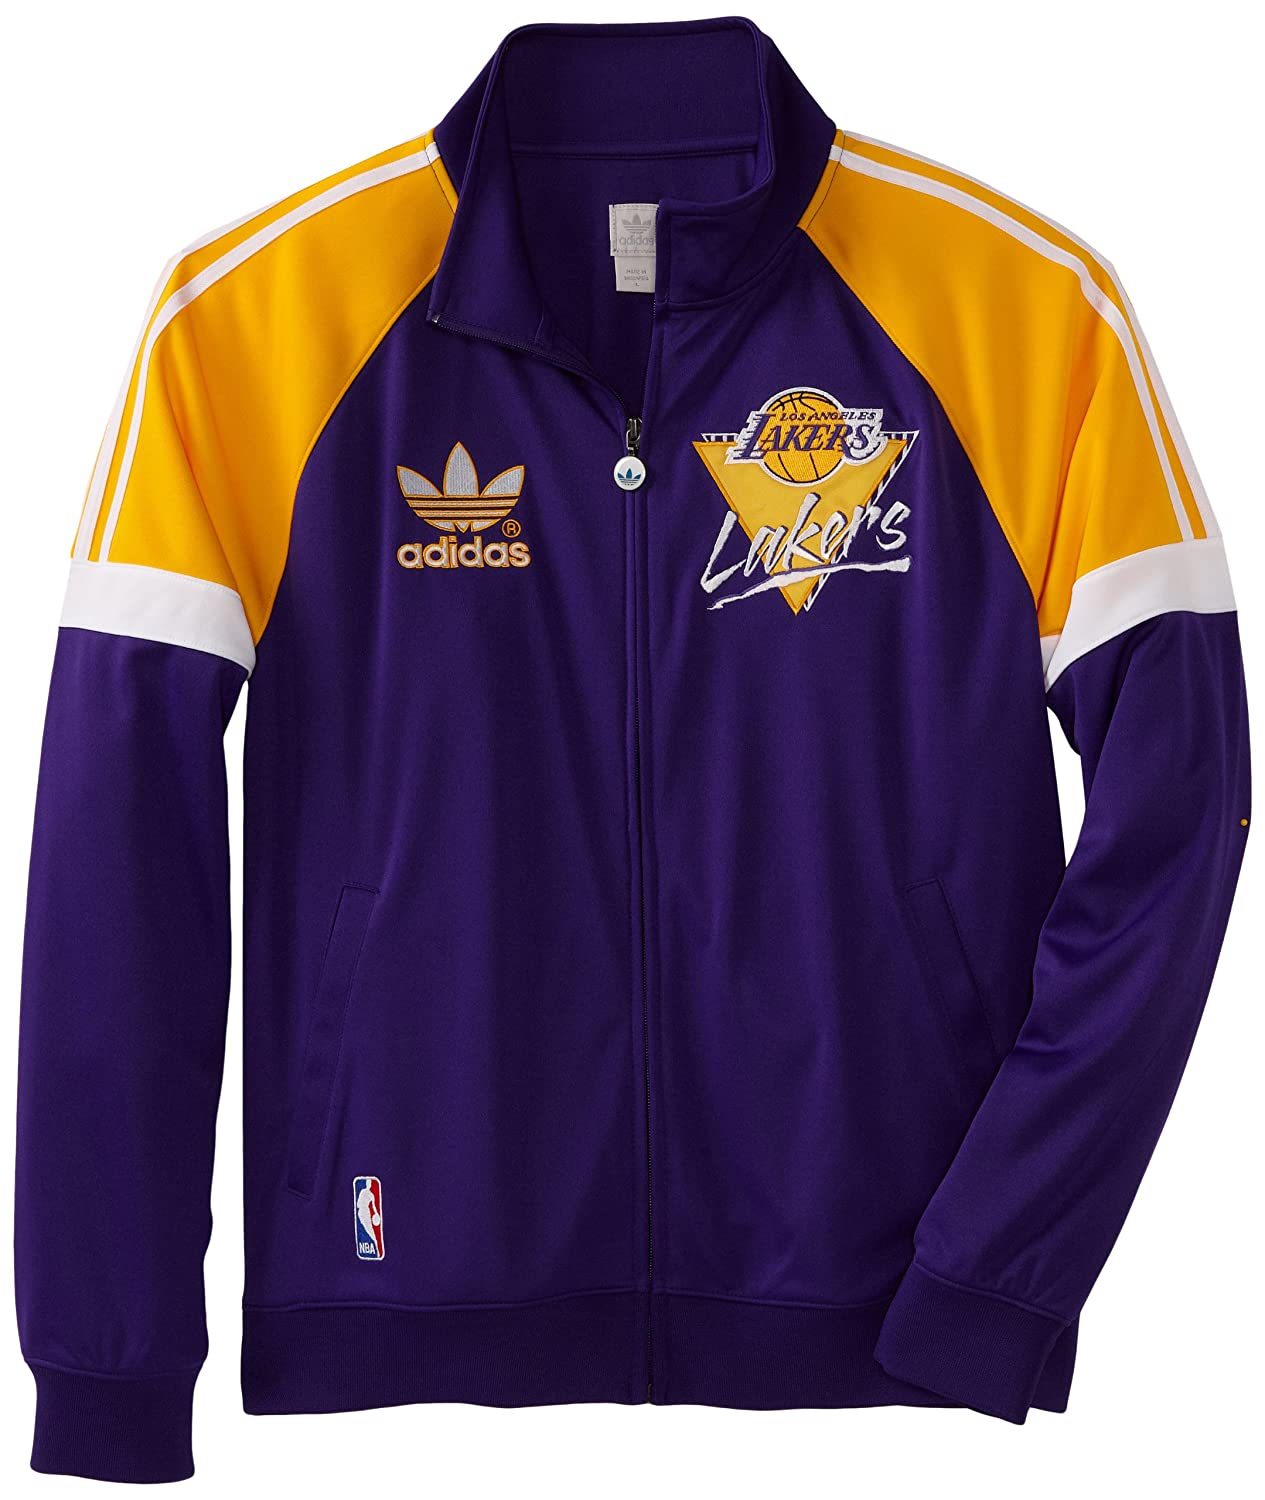 adidas Los Angeles Lakers Originals NBA Court Series Retro ...